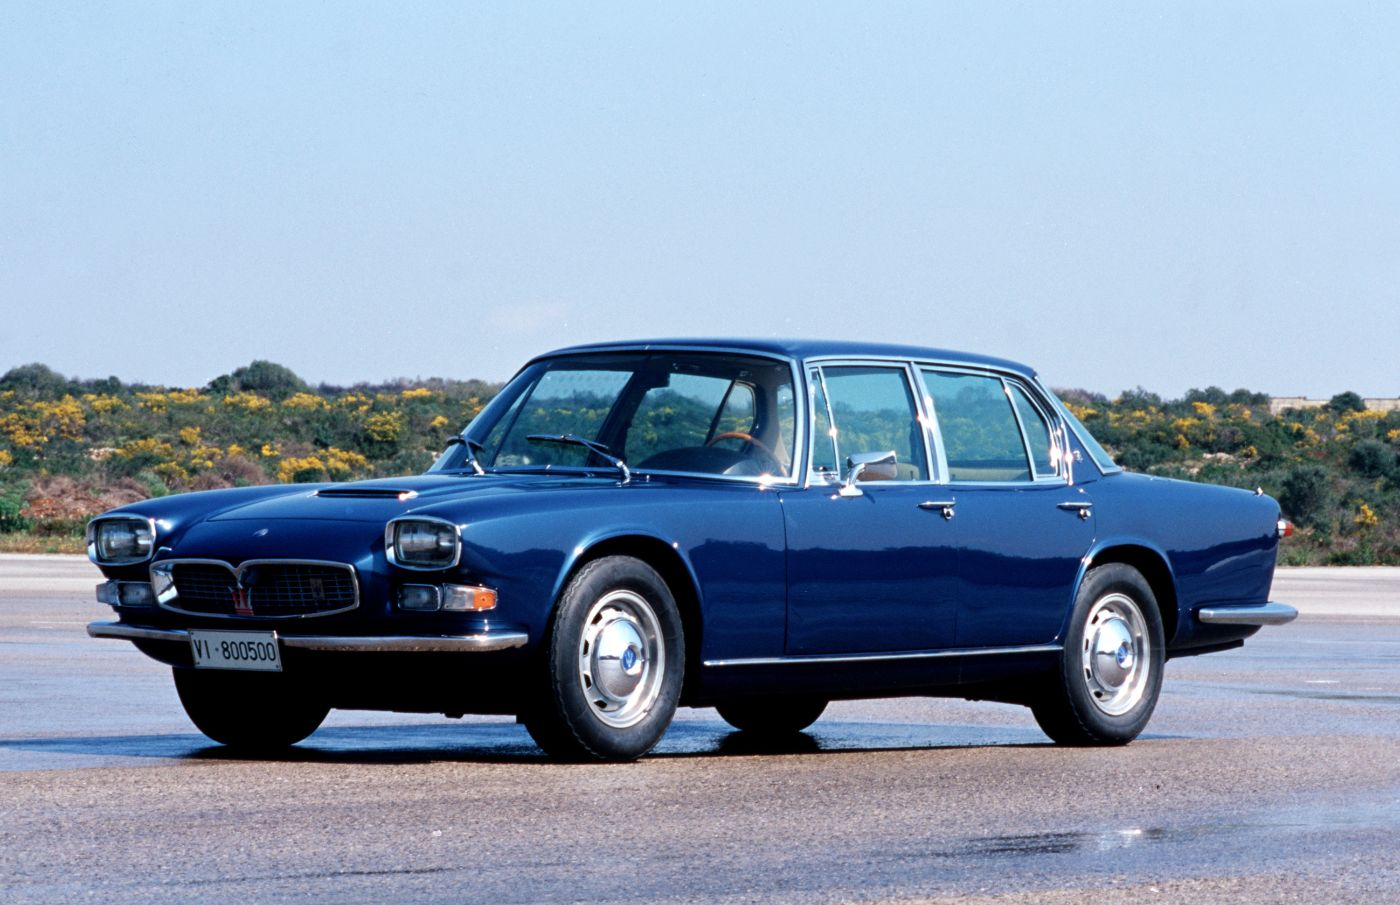 1964-1966 Maserati Quattroporte I - the classic sports car model in blue